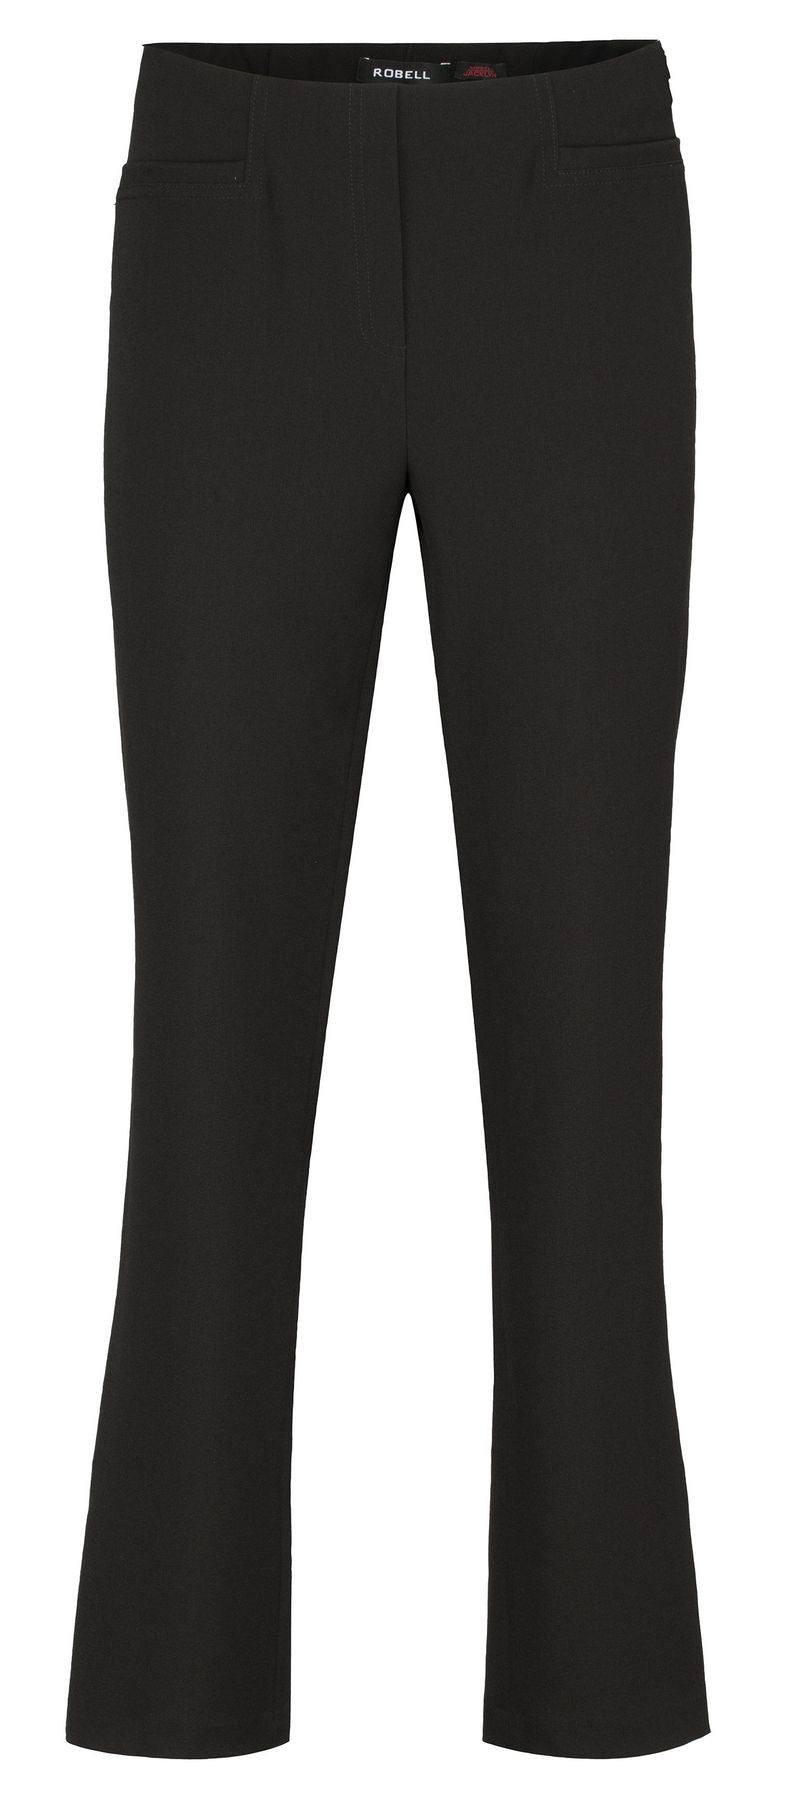 Jacklyn Black Classic Trousers